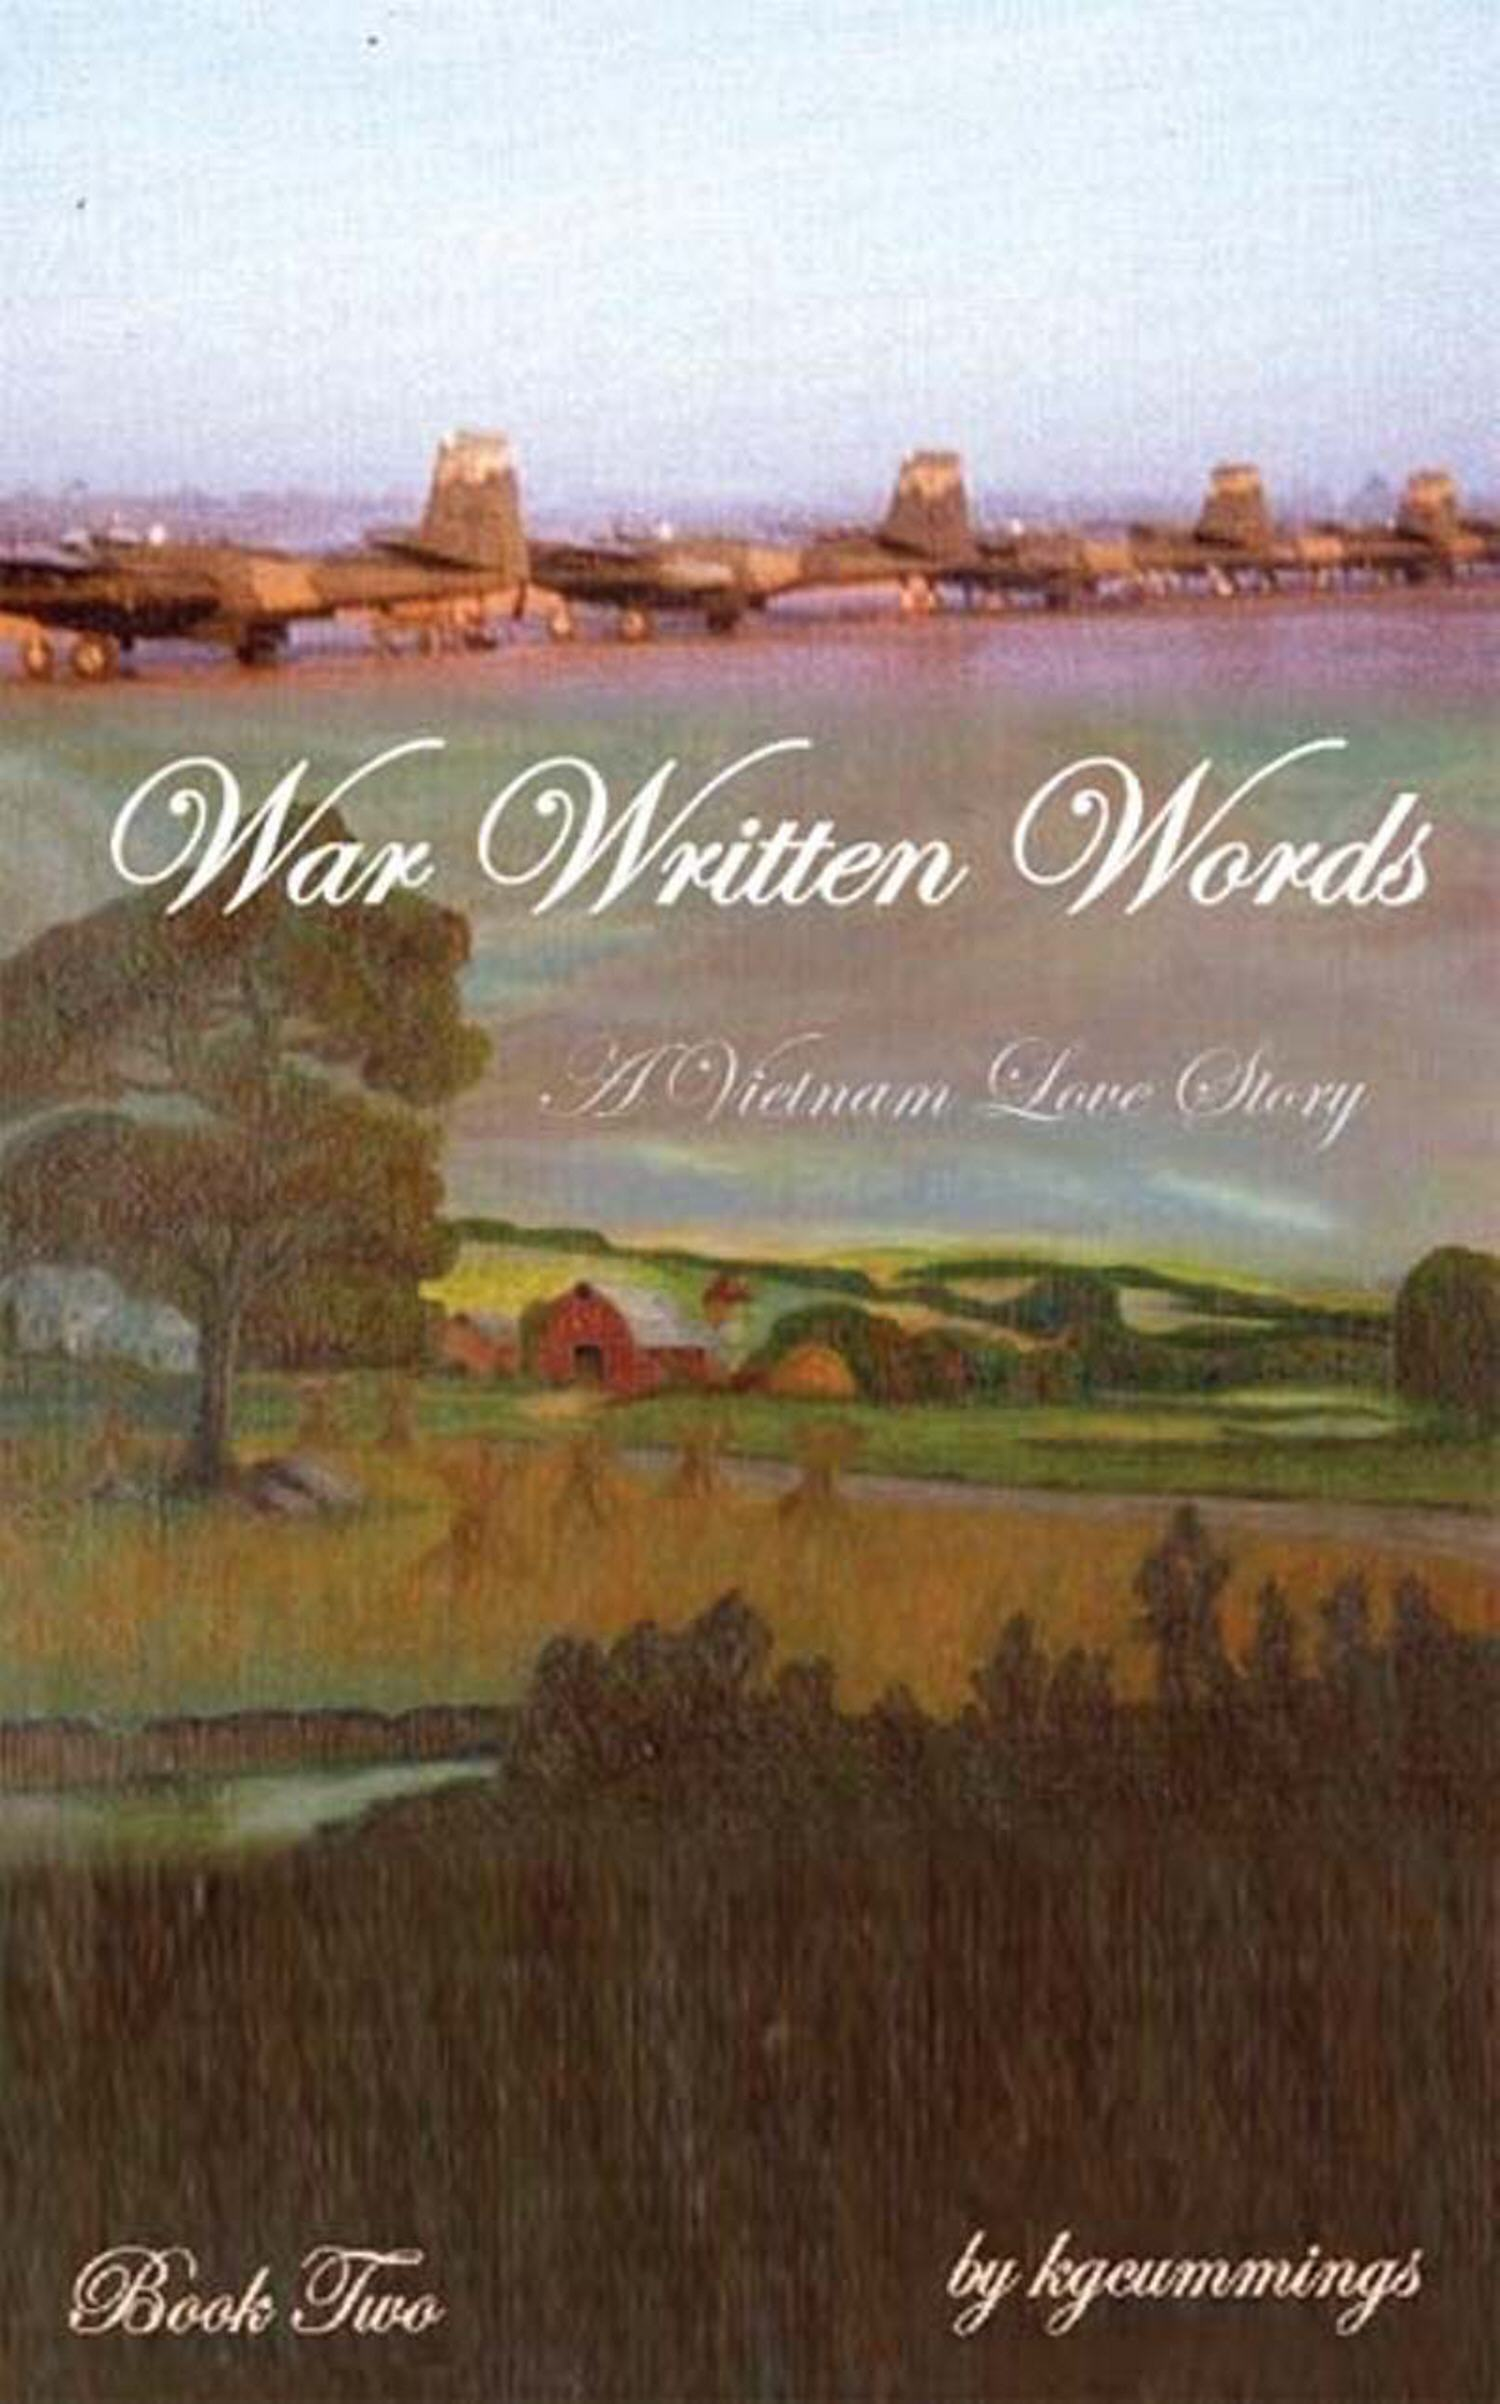 War Written Words:Book 2